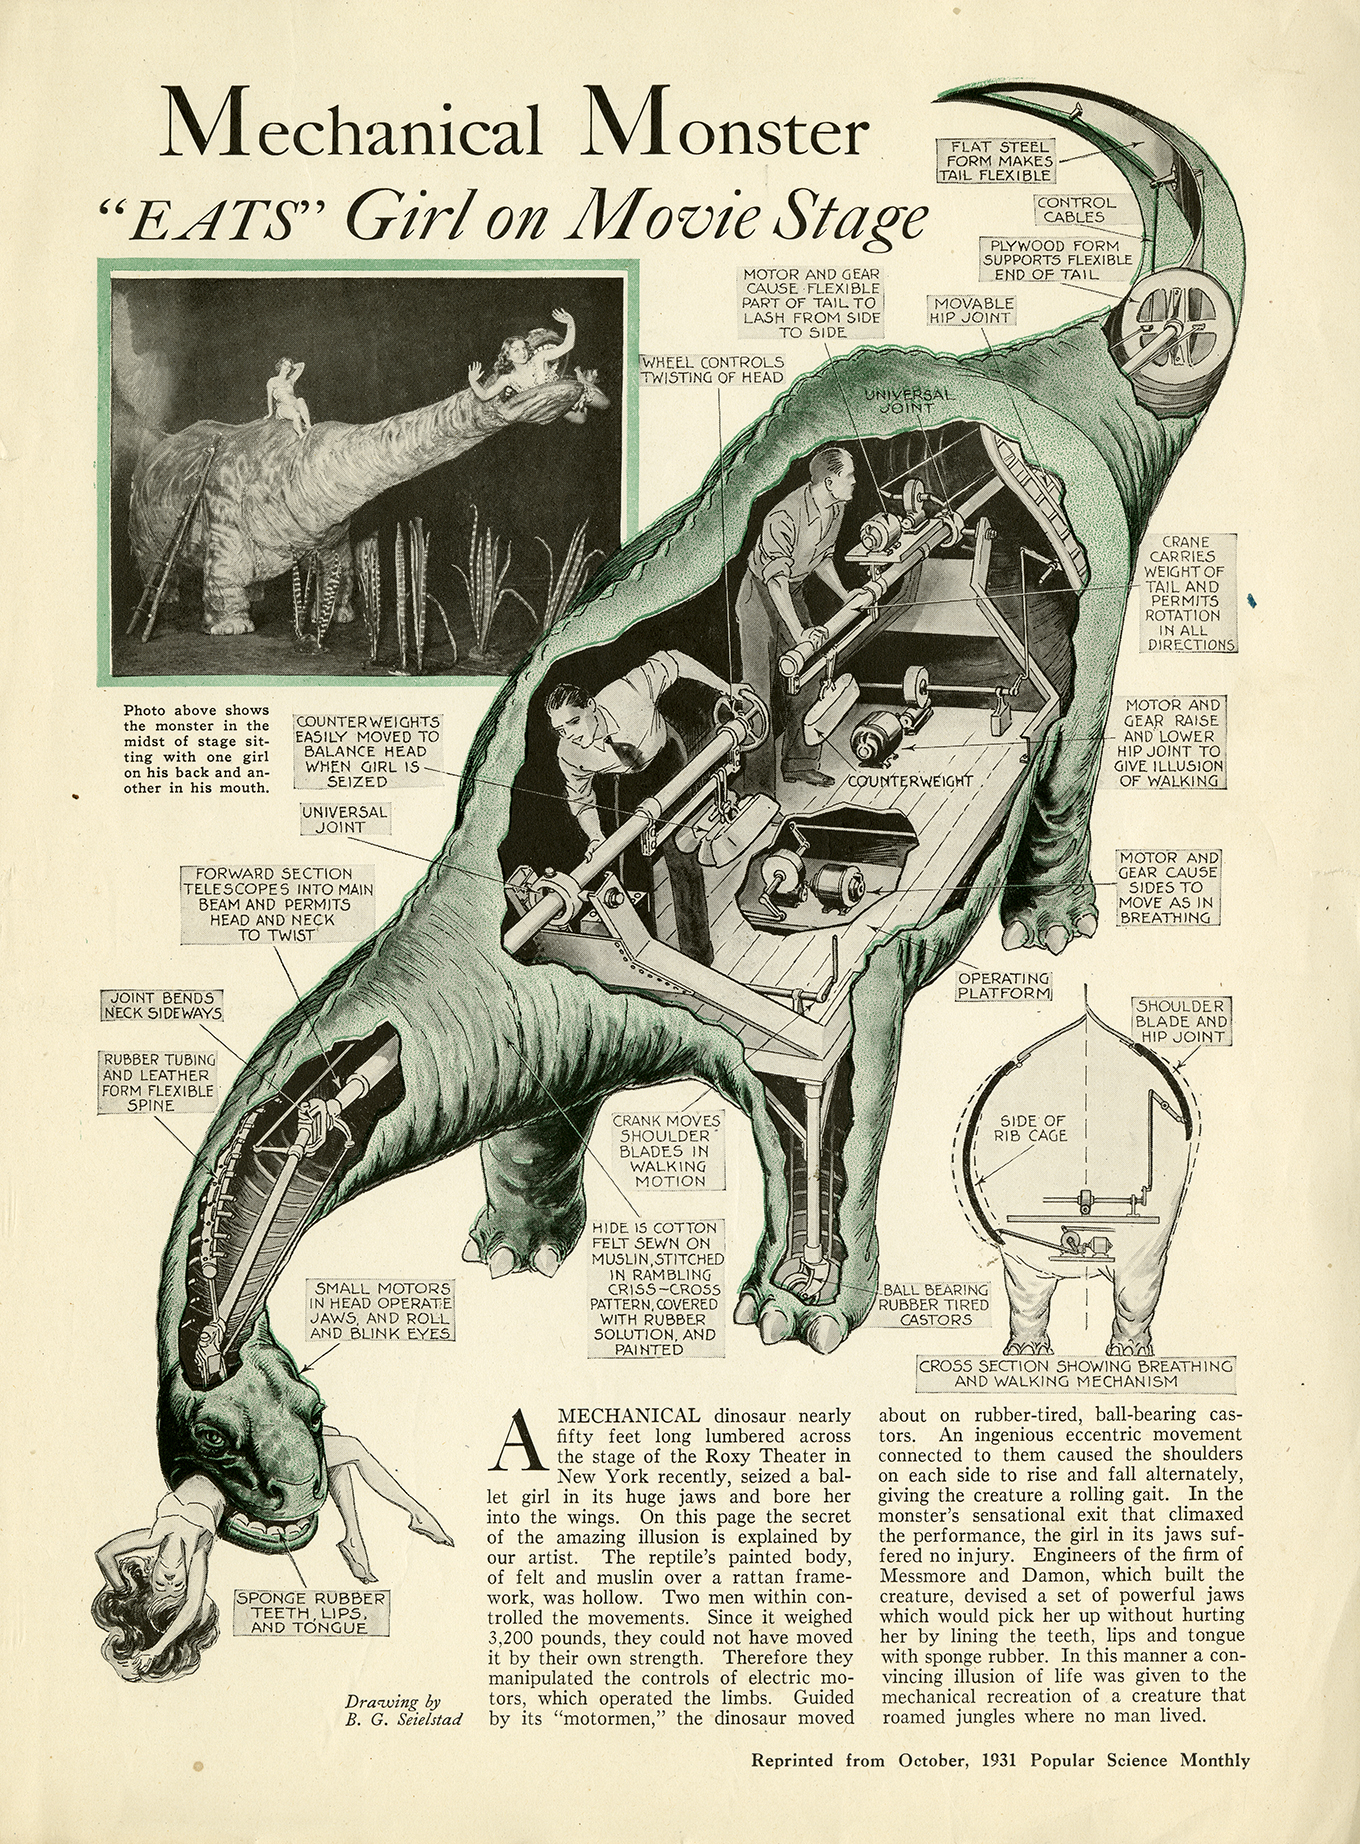 1931 Popular Science Monthly article with title Mechanical Monster Eats Girl on Movie Stage